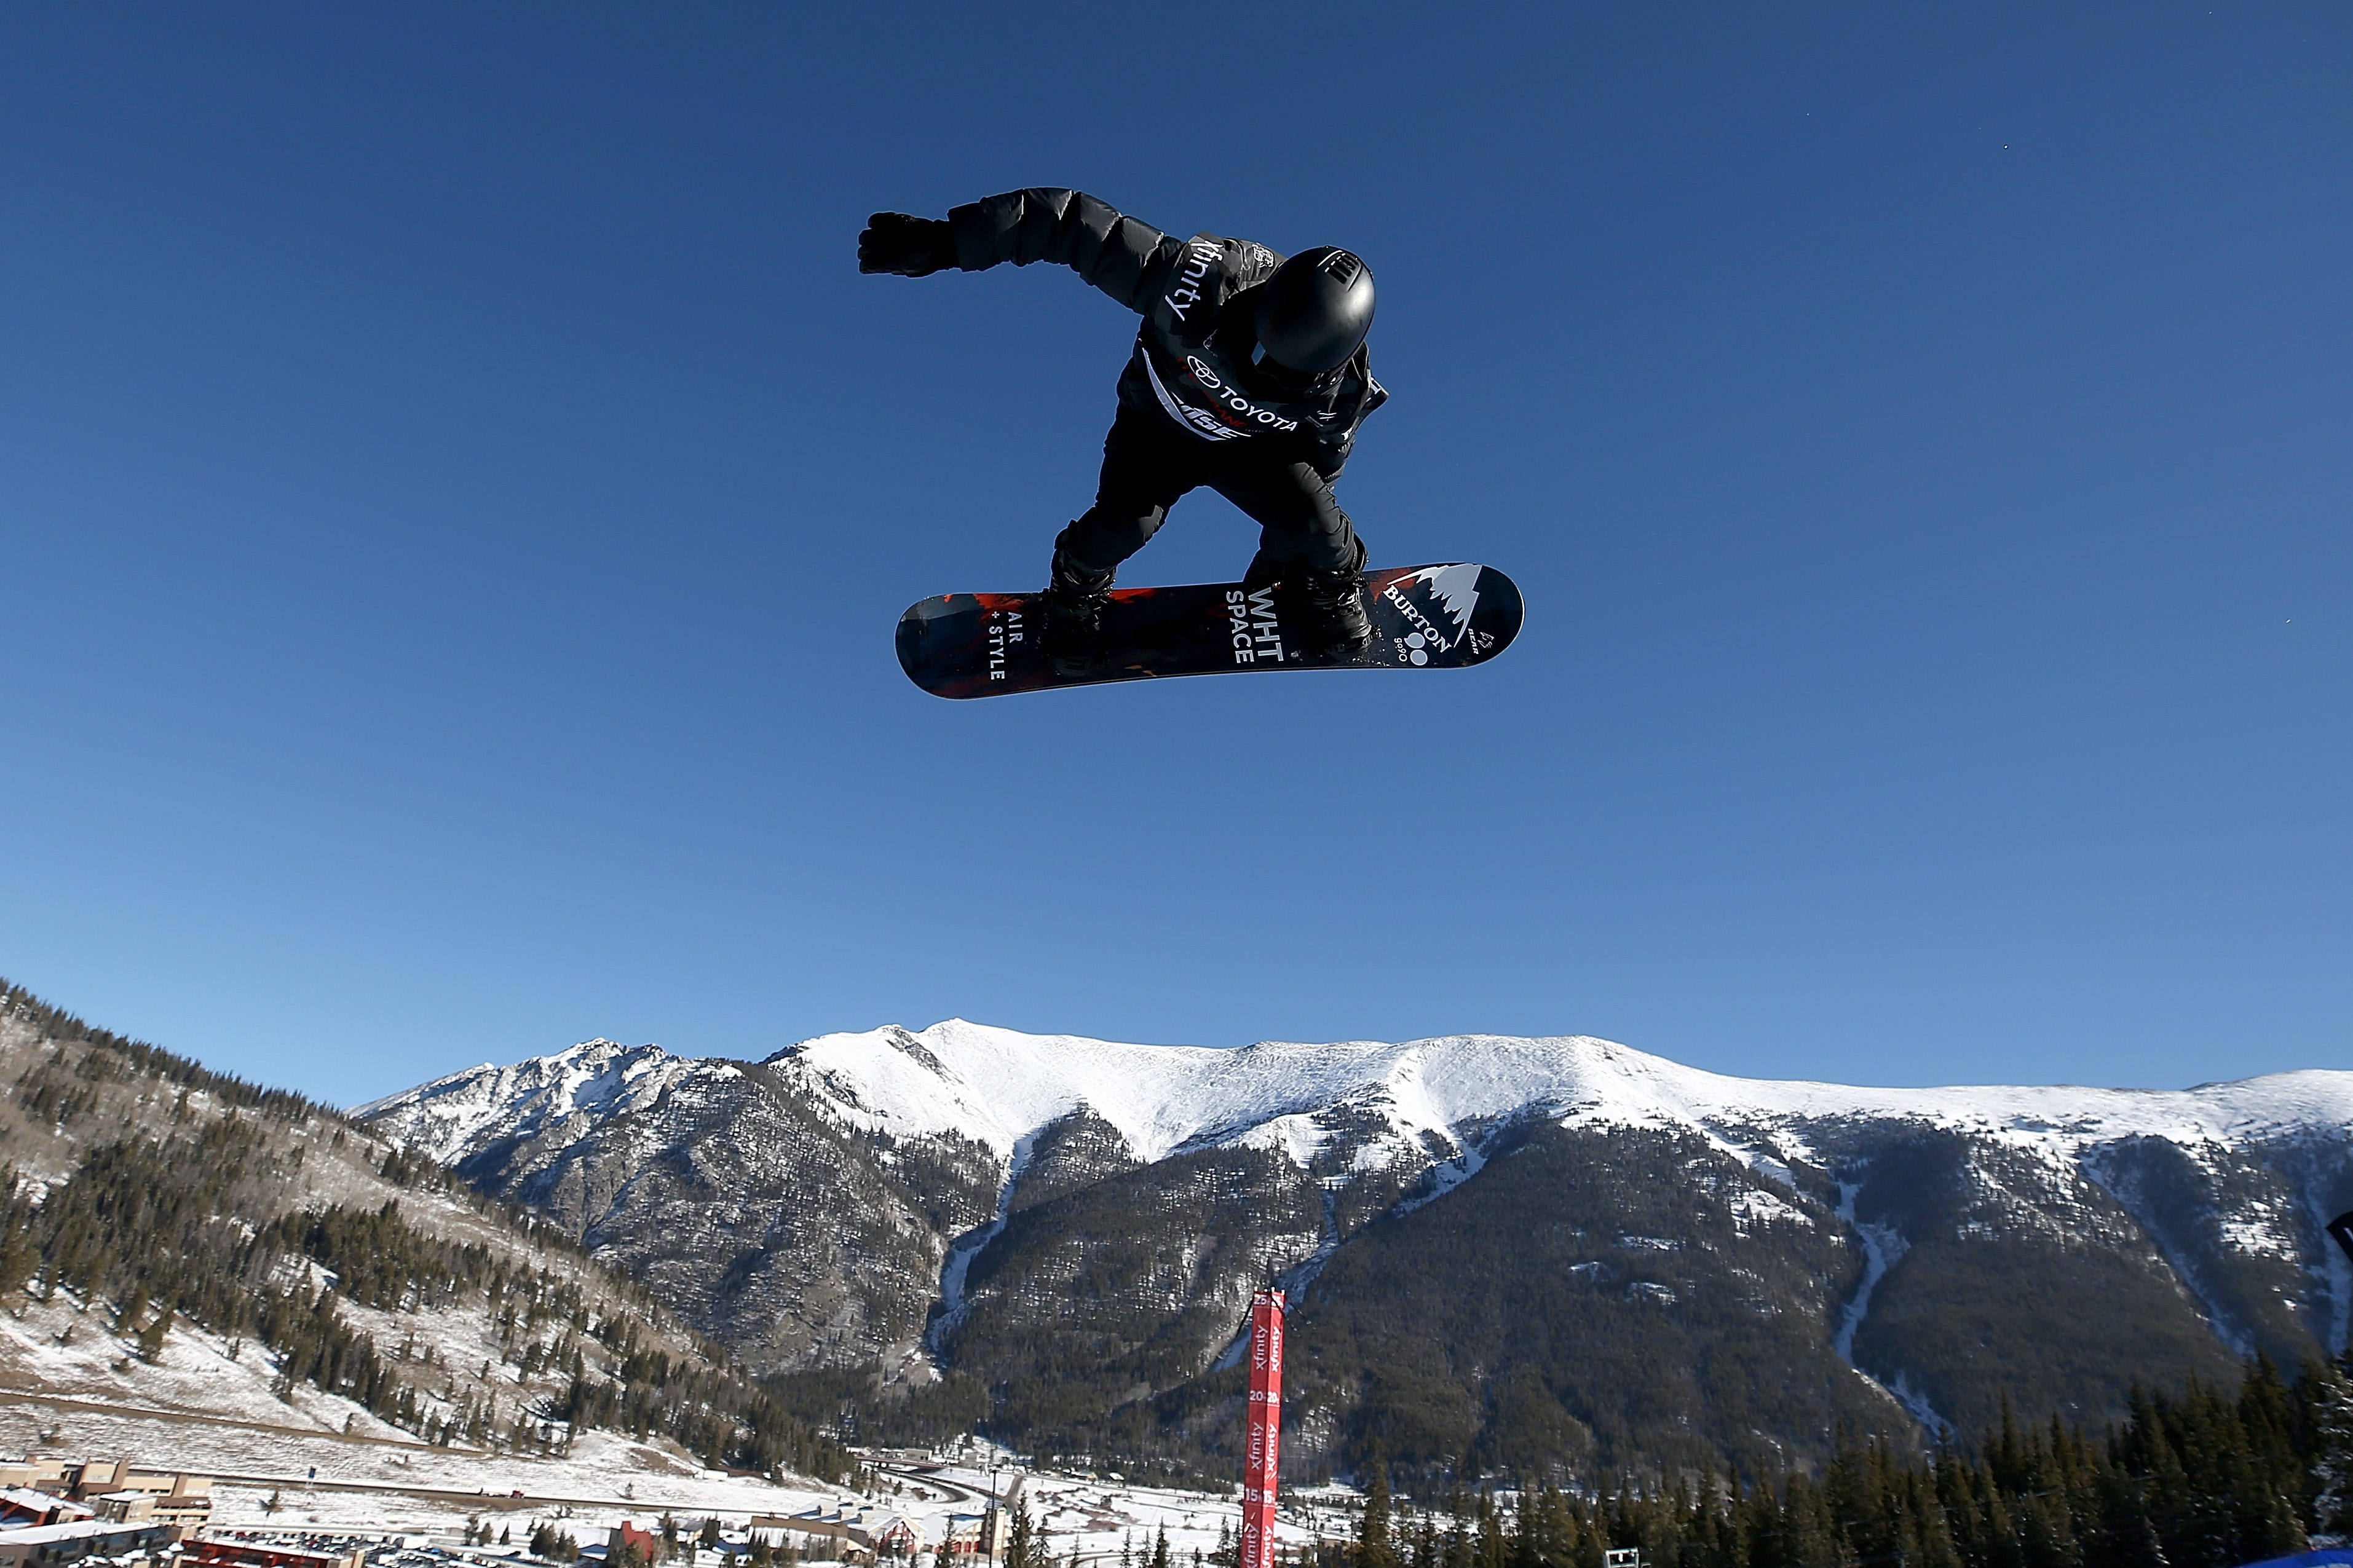 Shaun White wins gold medal in mens halfpipe in dramatic finish images